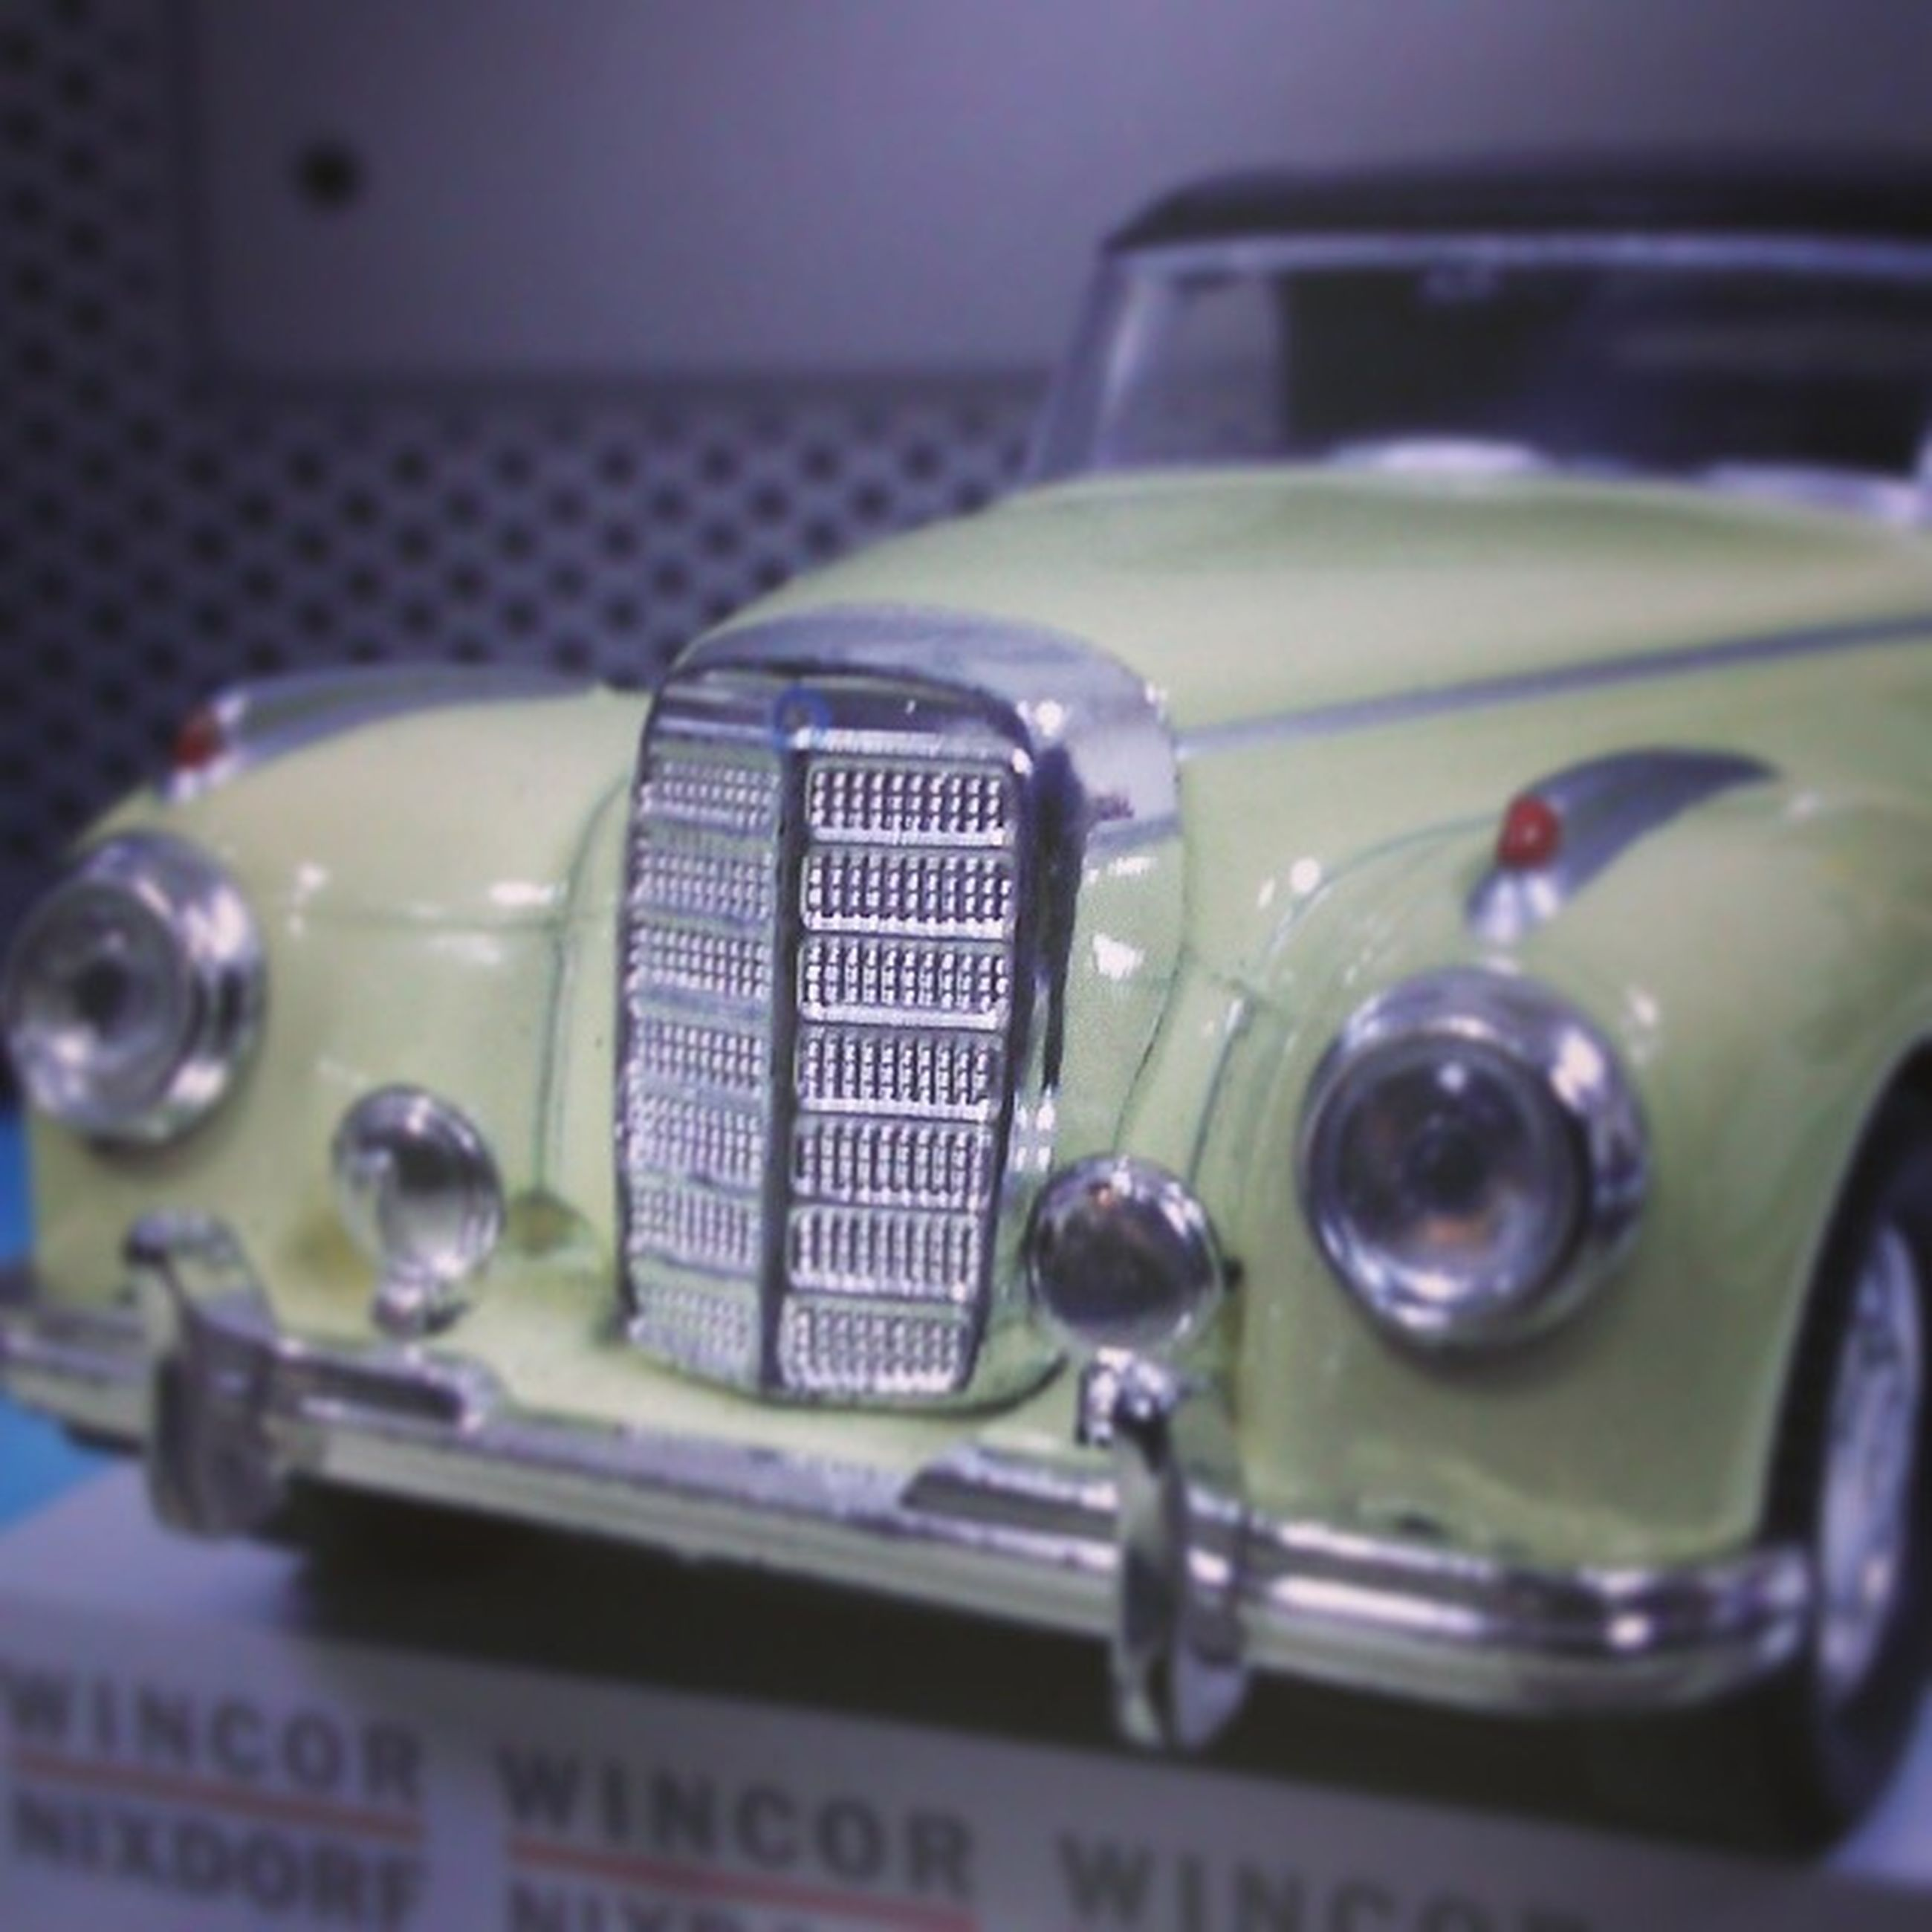 indoors, close-up, car, land vehicle, still life, technology, focus on foreground, selective focus, mode of transport, transportation, no people, toy, table, retro styled, reflection, shiny, glass - material, stationary, part of, old-fashioned